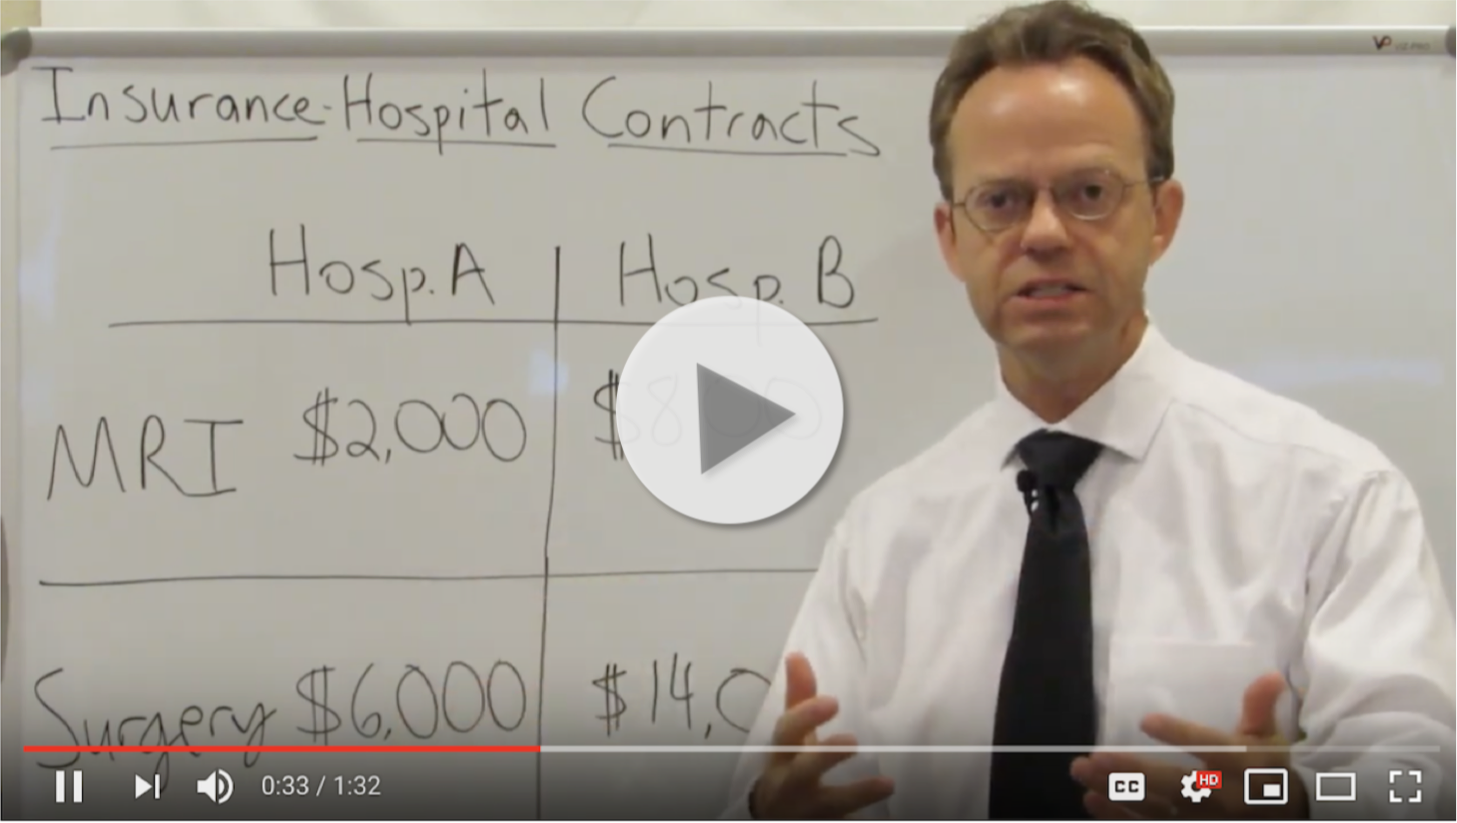 Insurance and Hospital Contracts